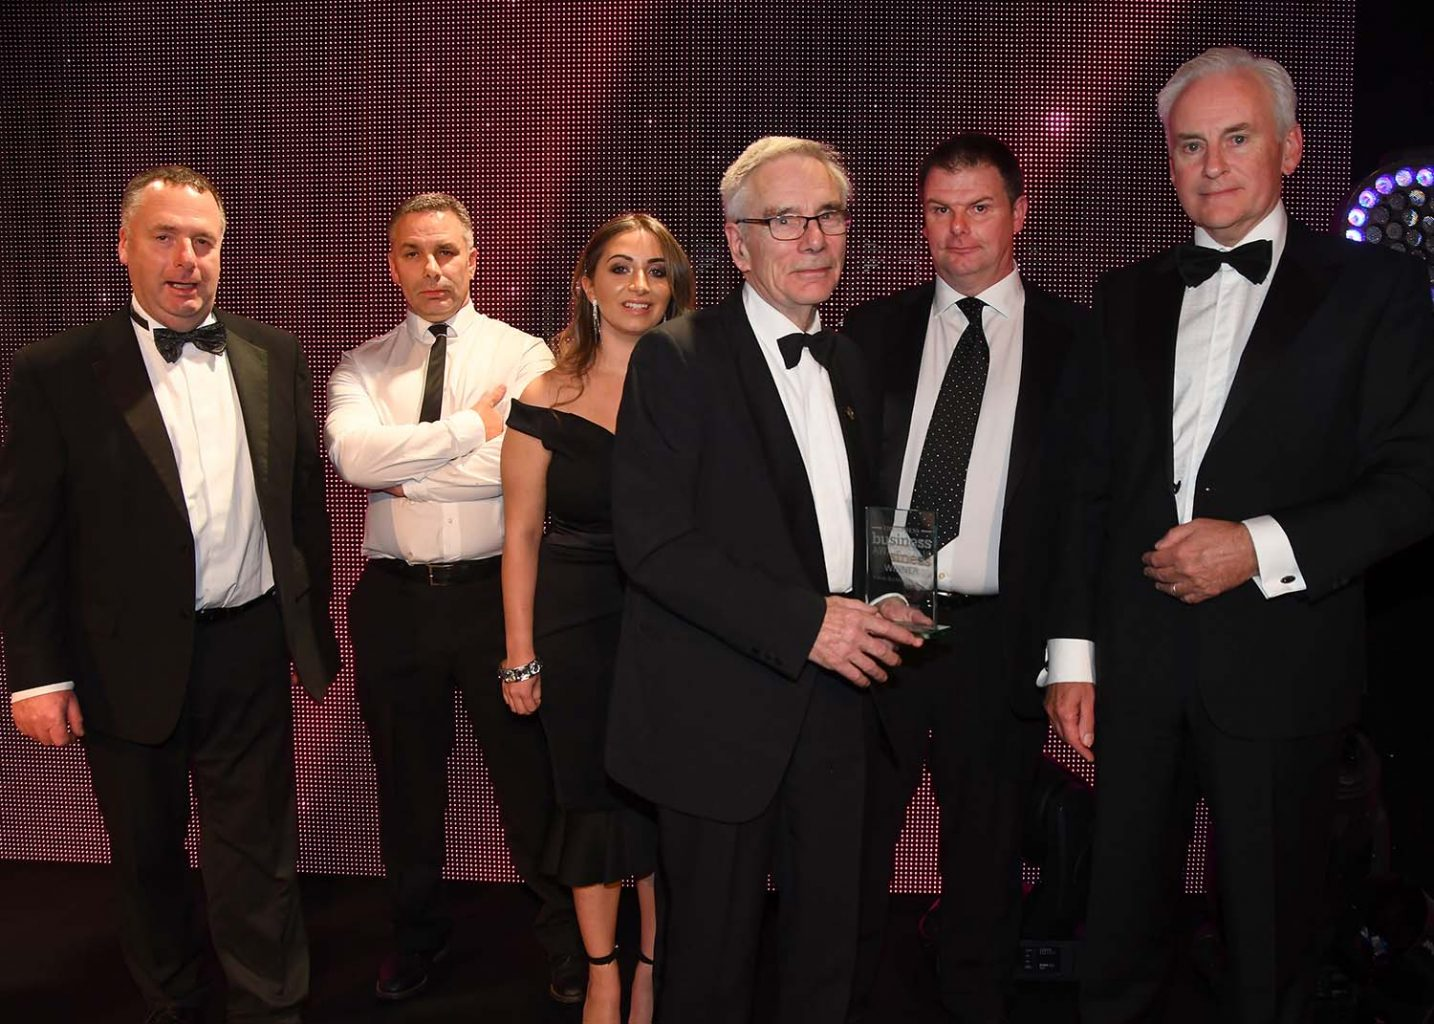 Two awards for Johnsons - 'Family Business of the Year' and 'Business of the Year'